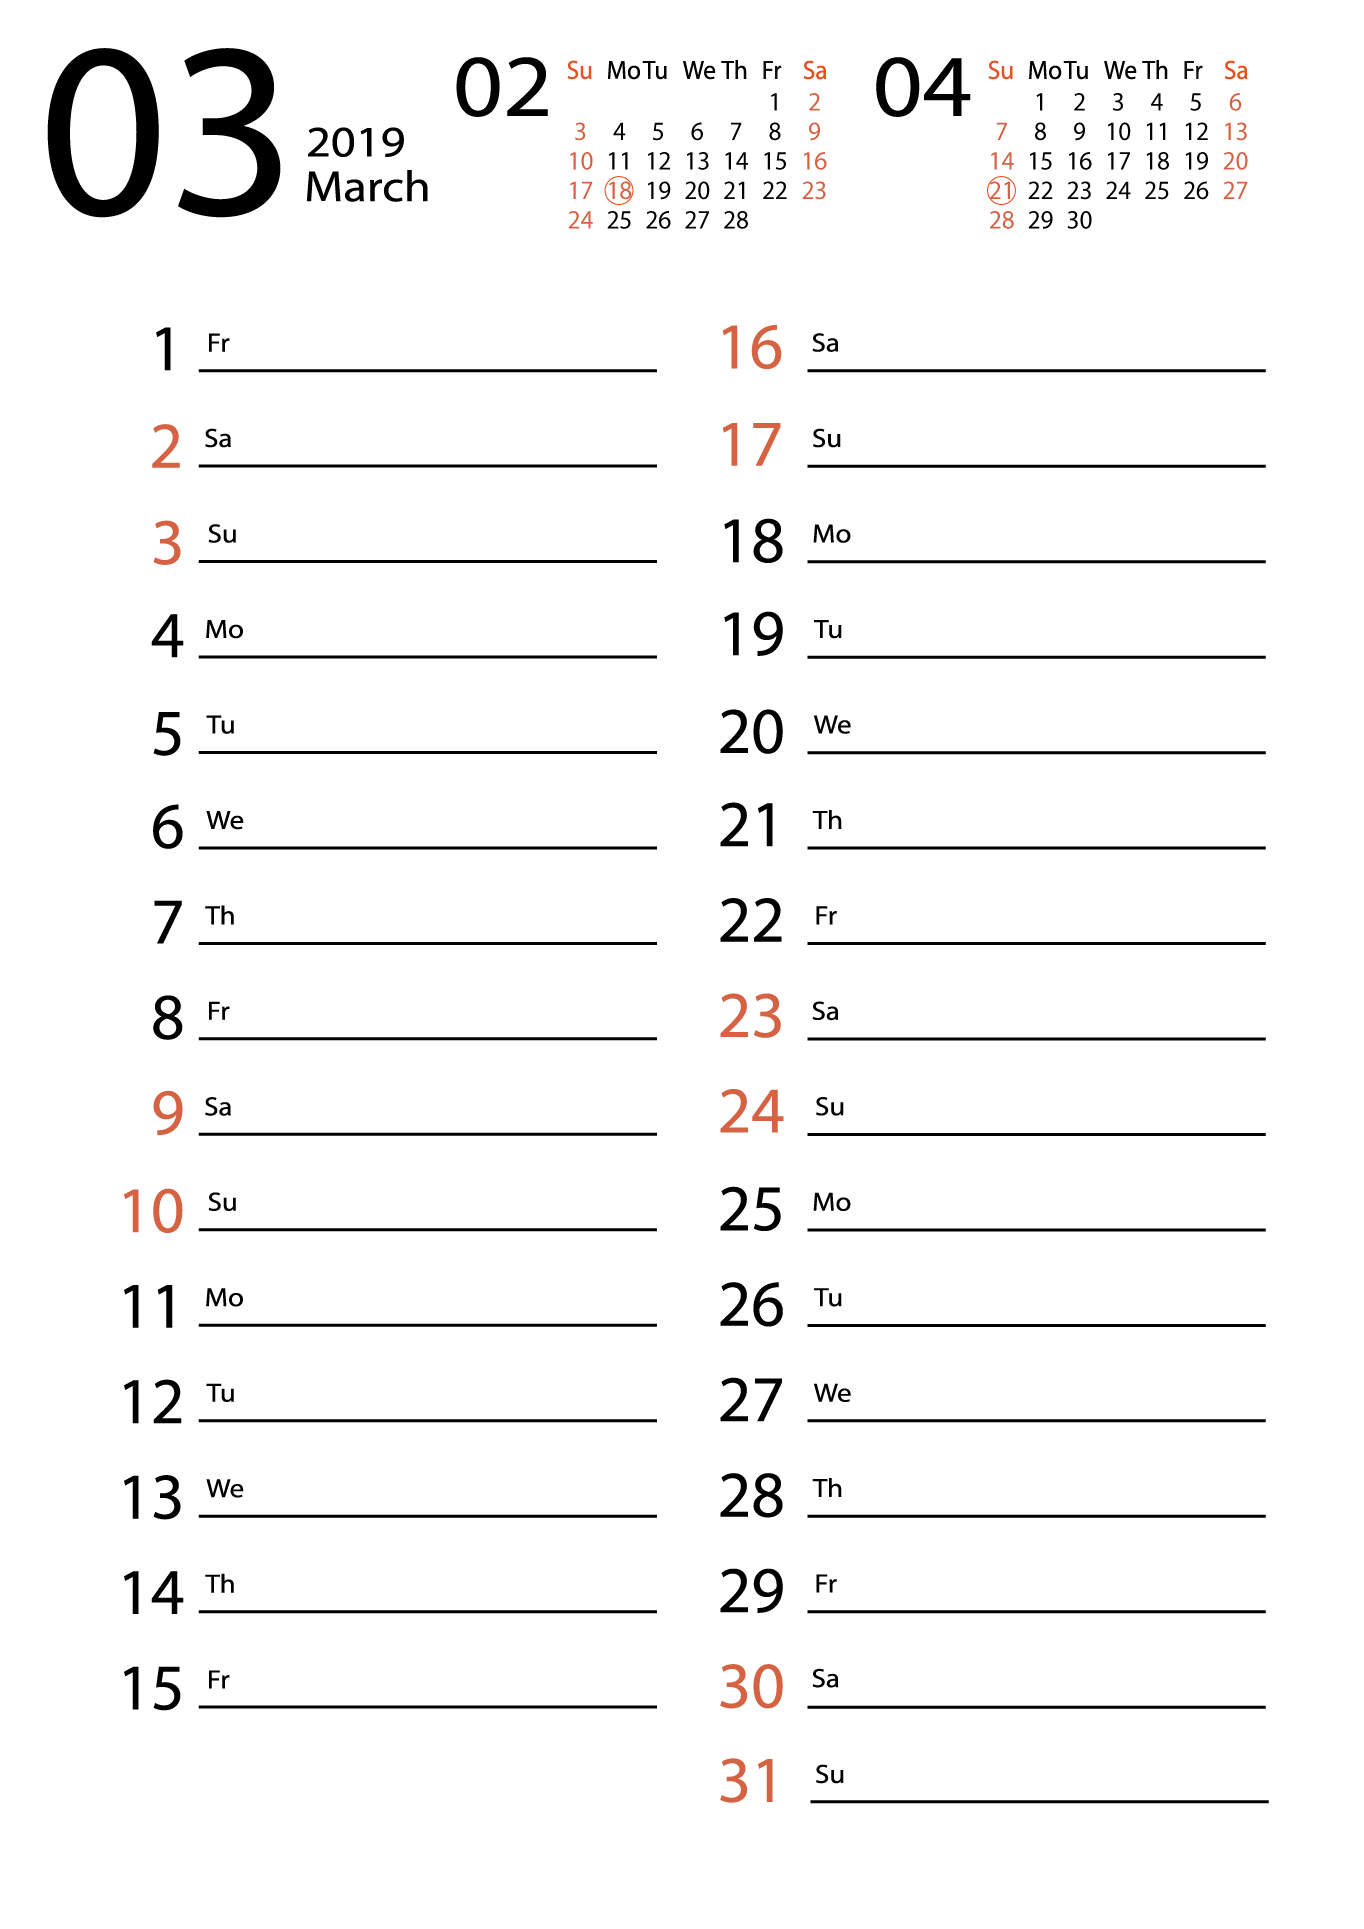 March 2019 calendar for notes